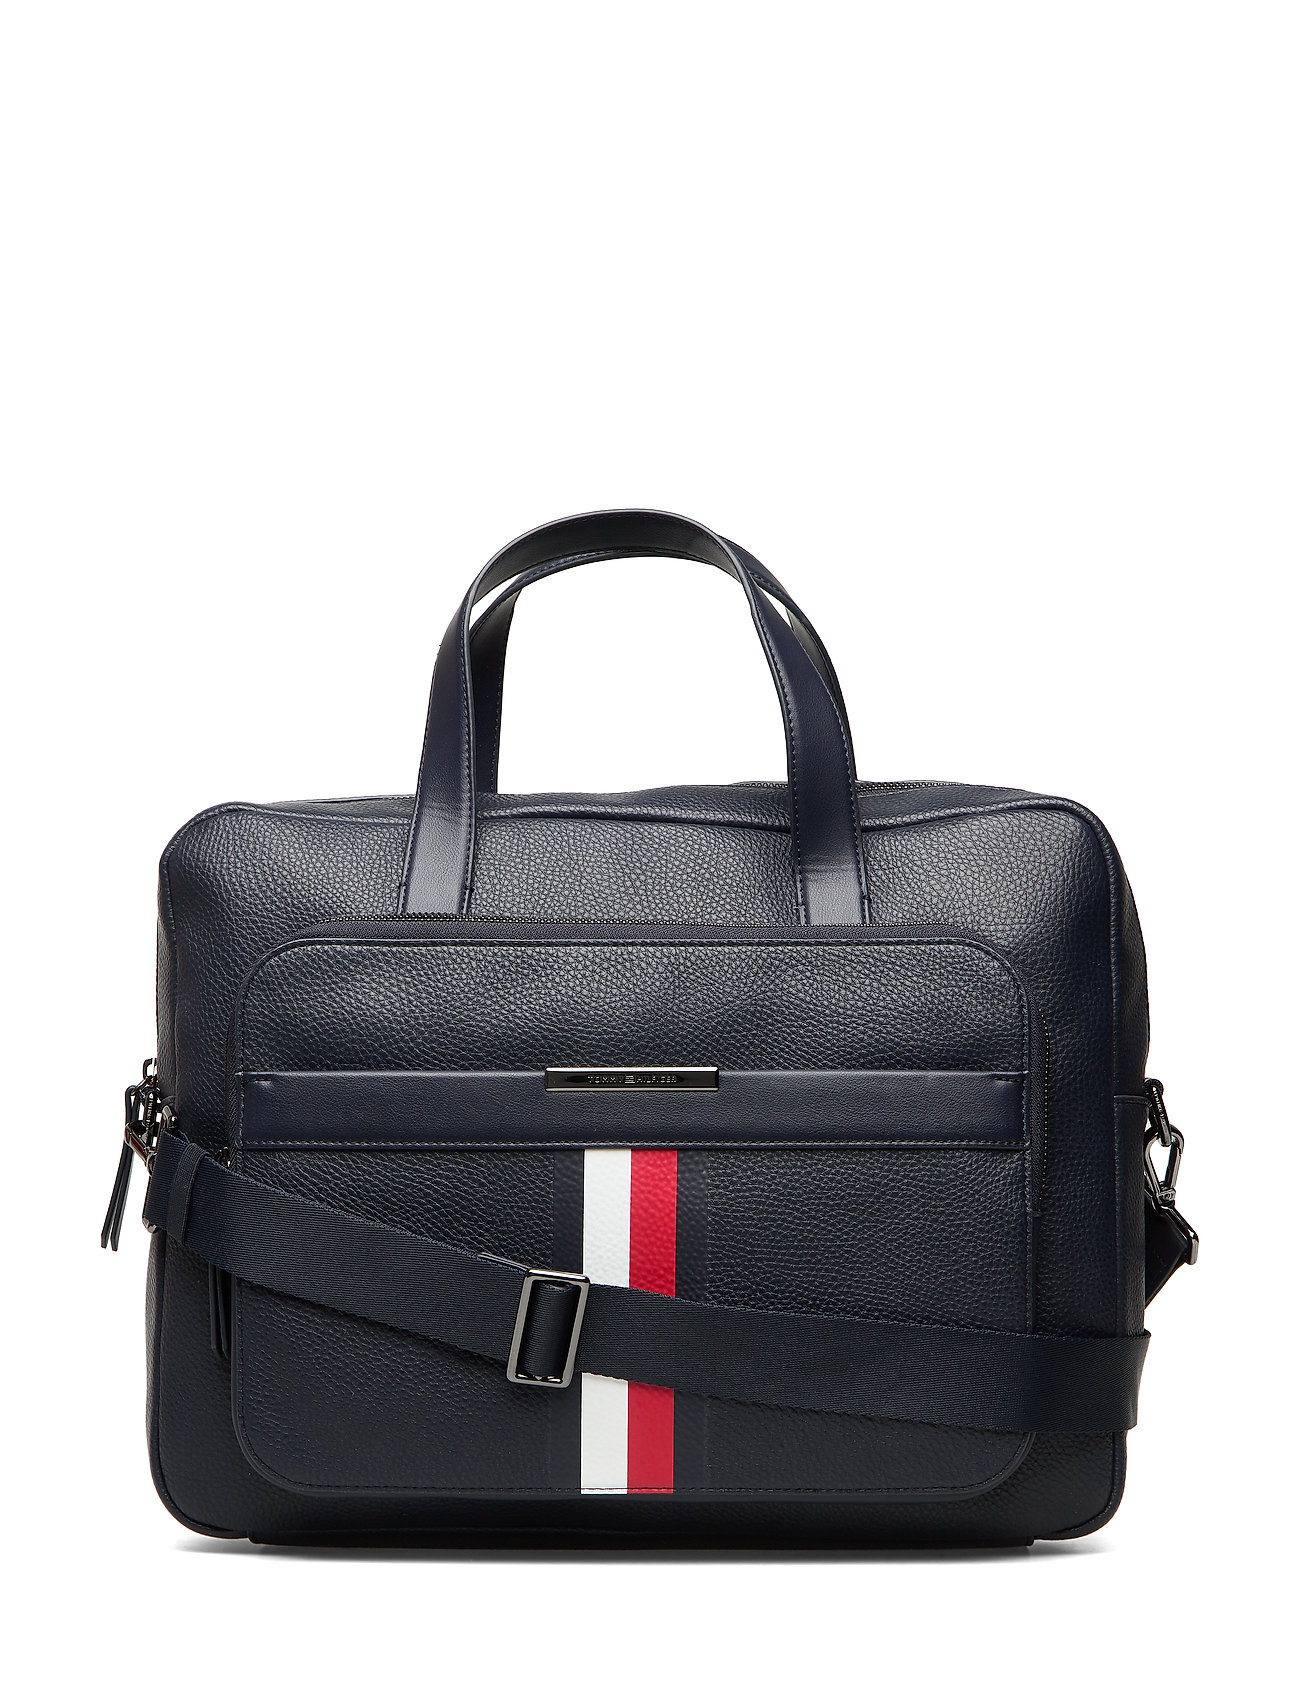 Tommy Hilfiger TH DOWNTOWN CORP COM - SKY CAPTAIN